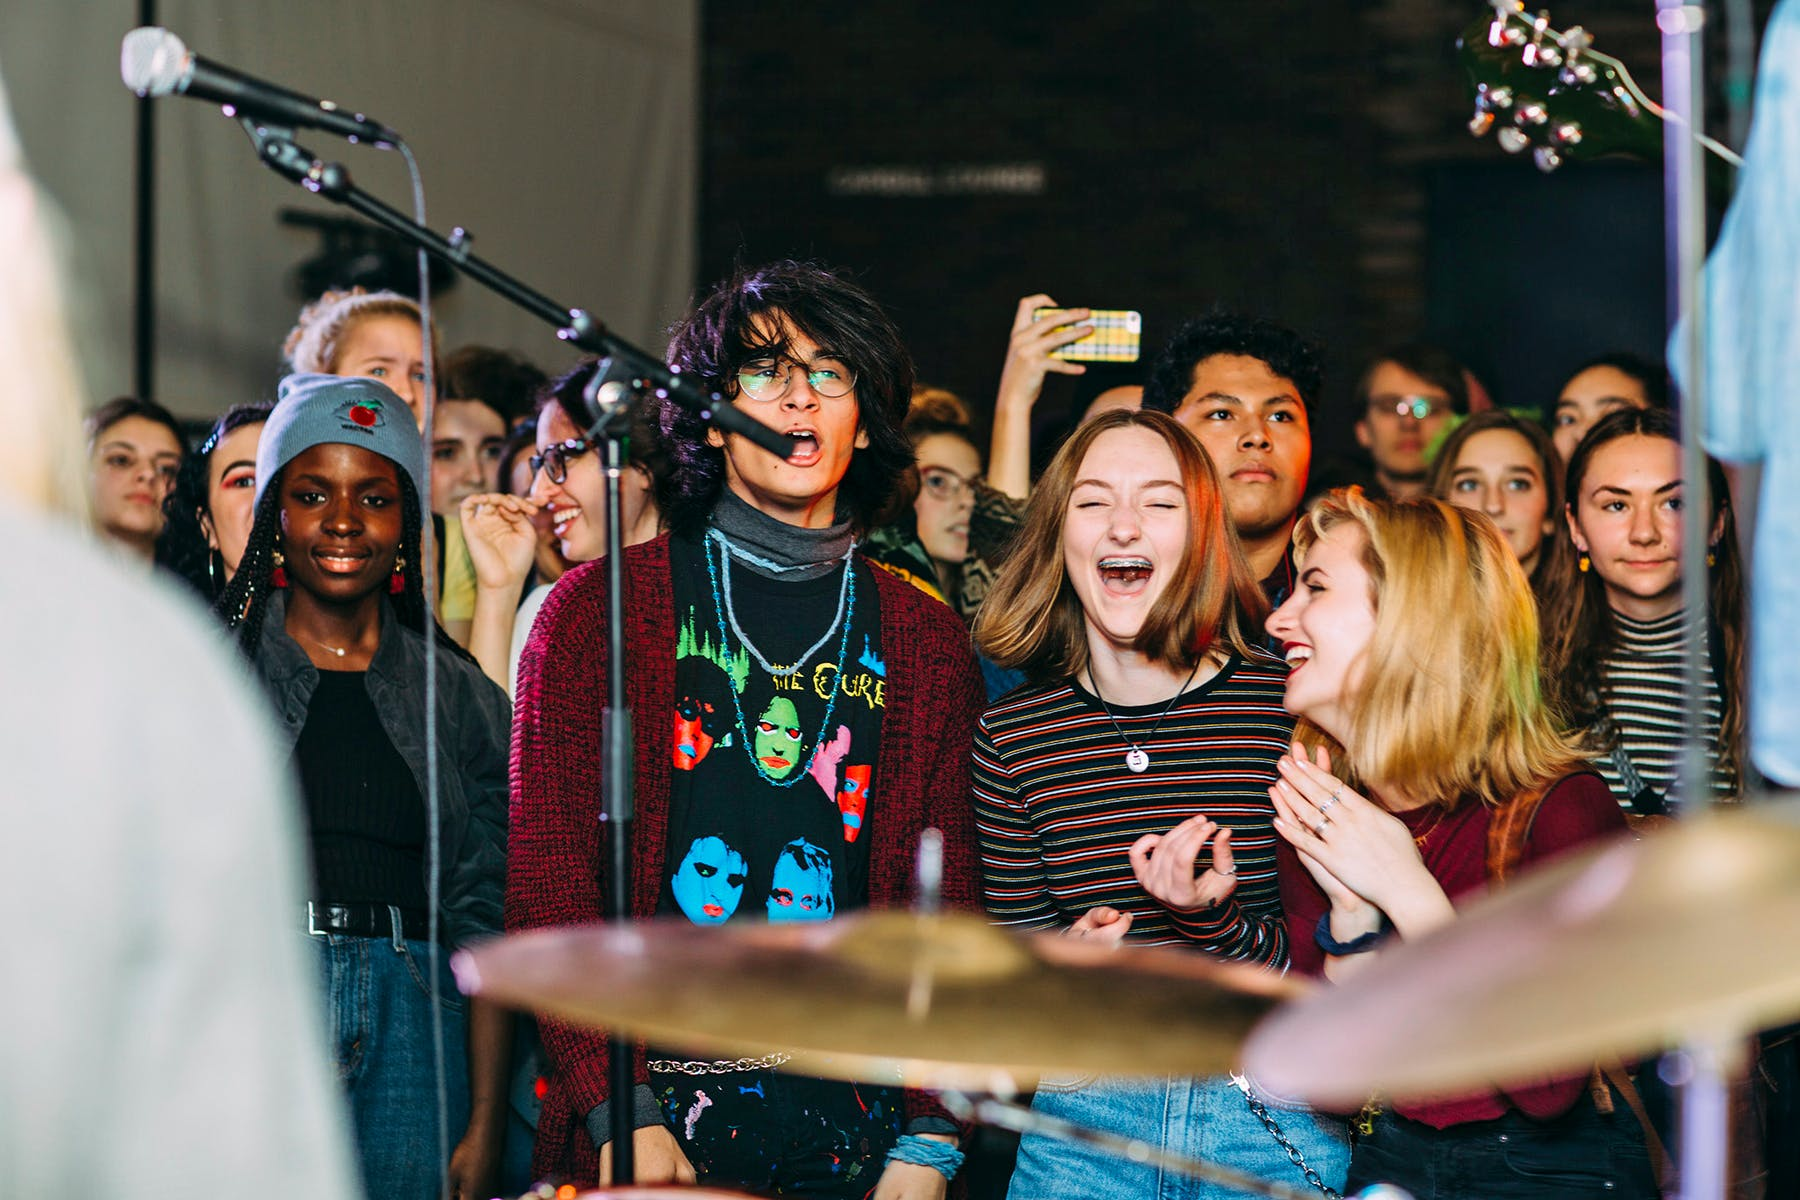 A group of teenagers dancing and singing along to a band.